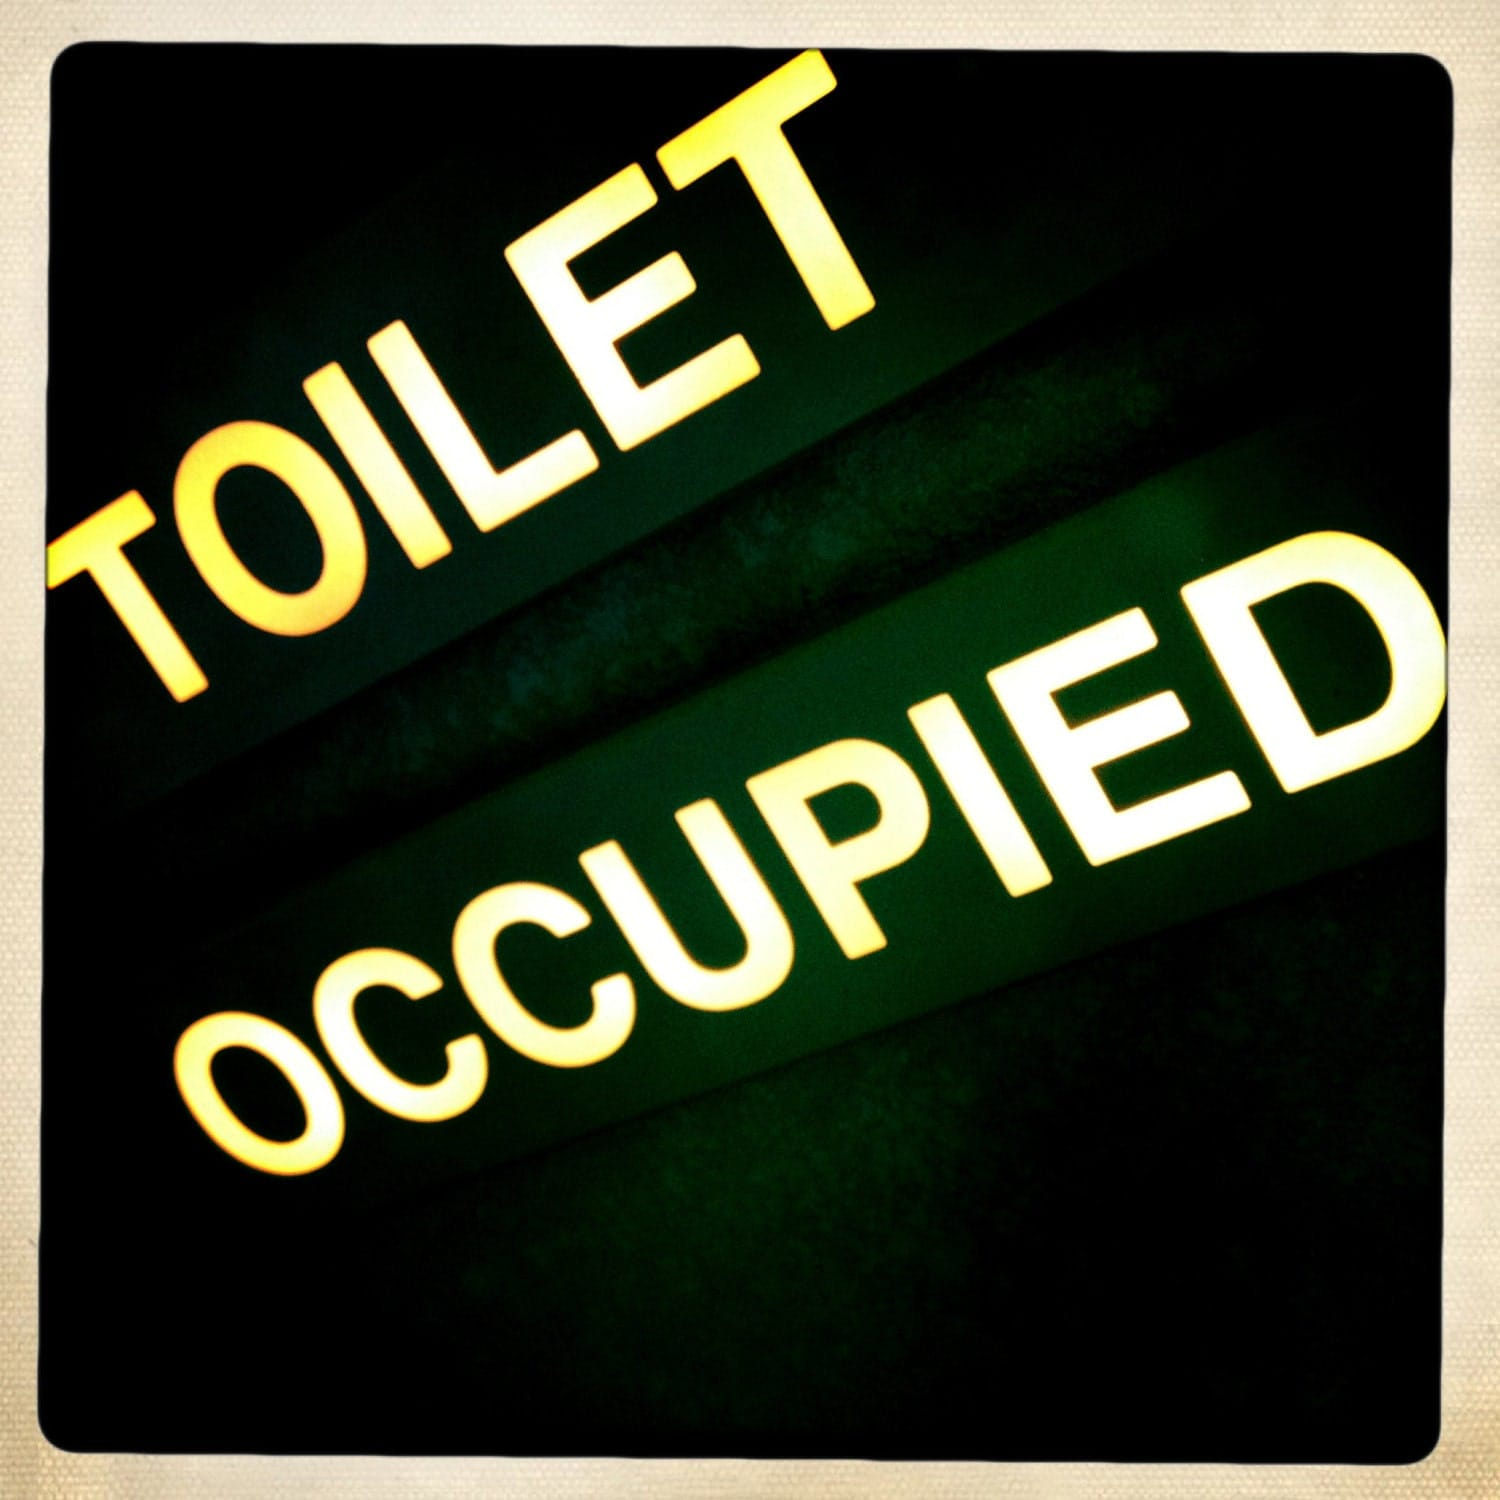 Printable occupied restroom signs just b cause for Occupied bathroom sign